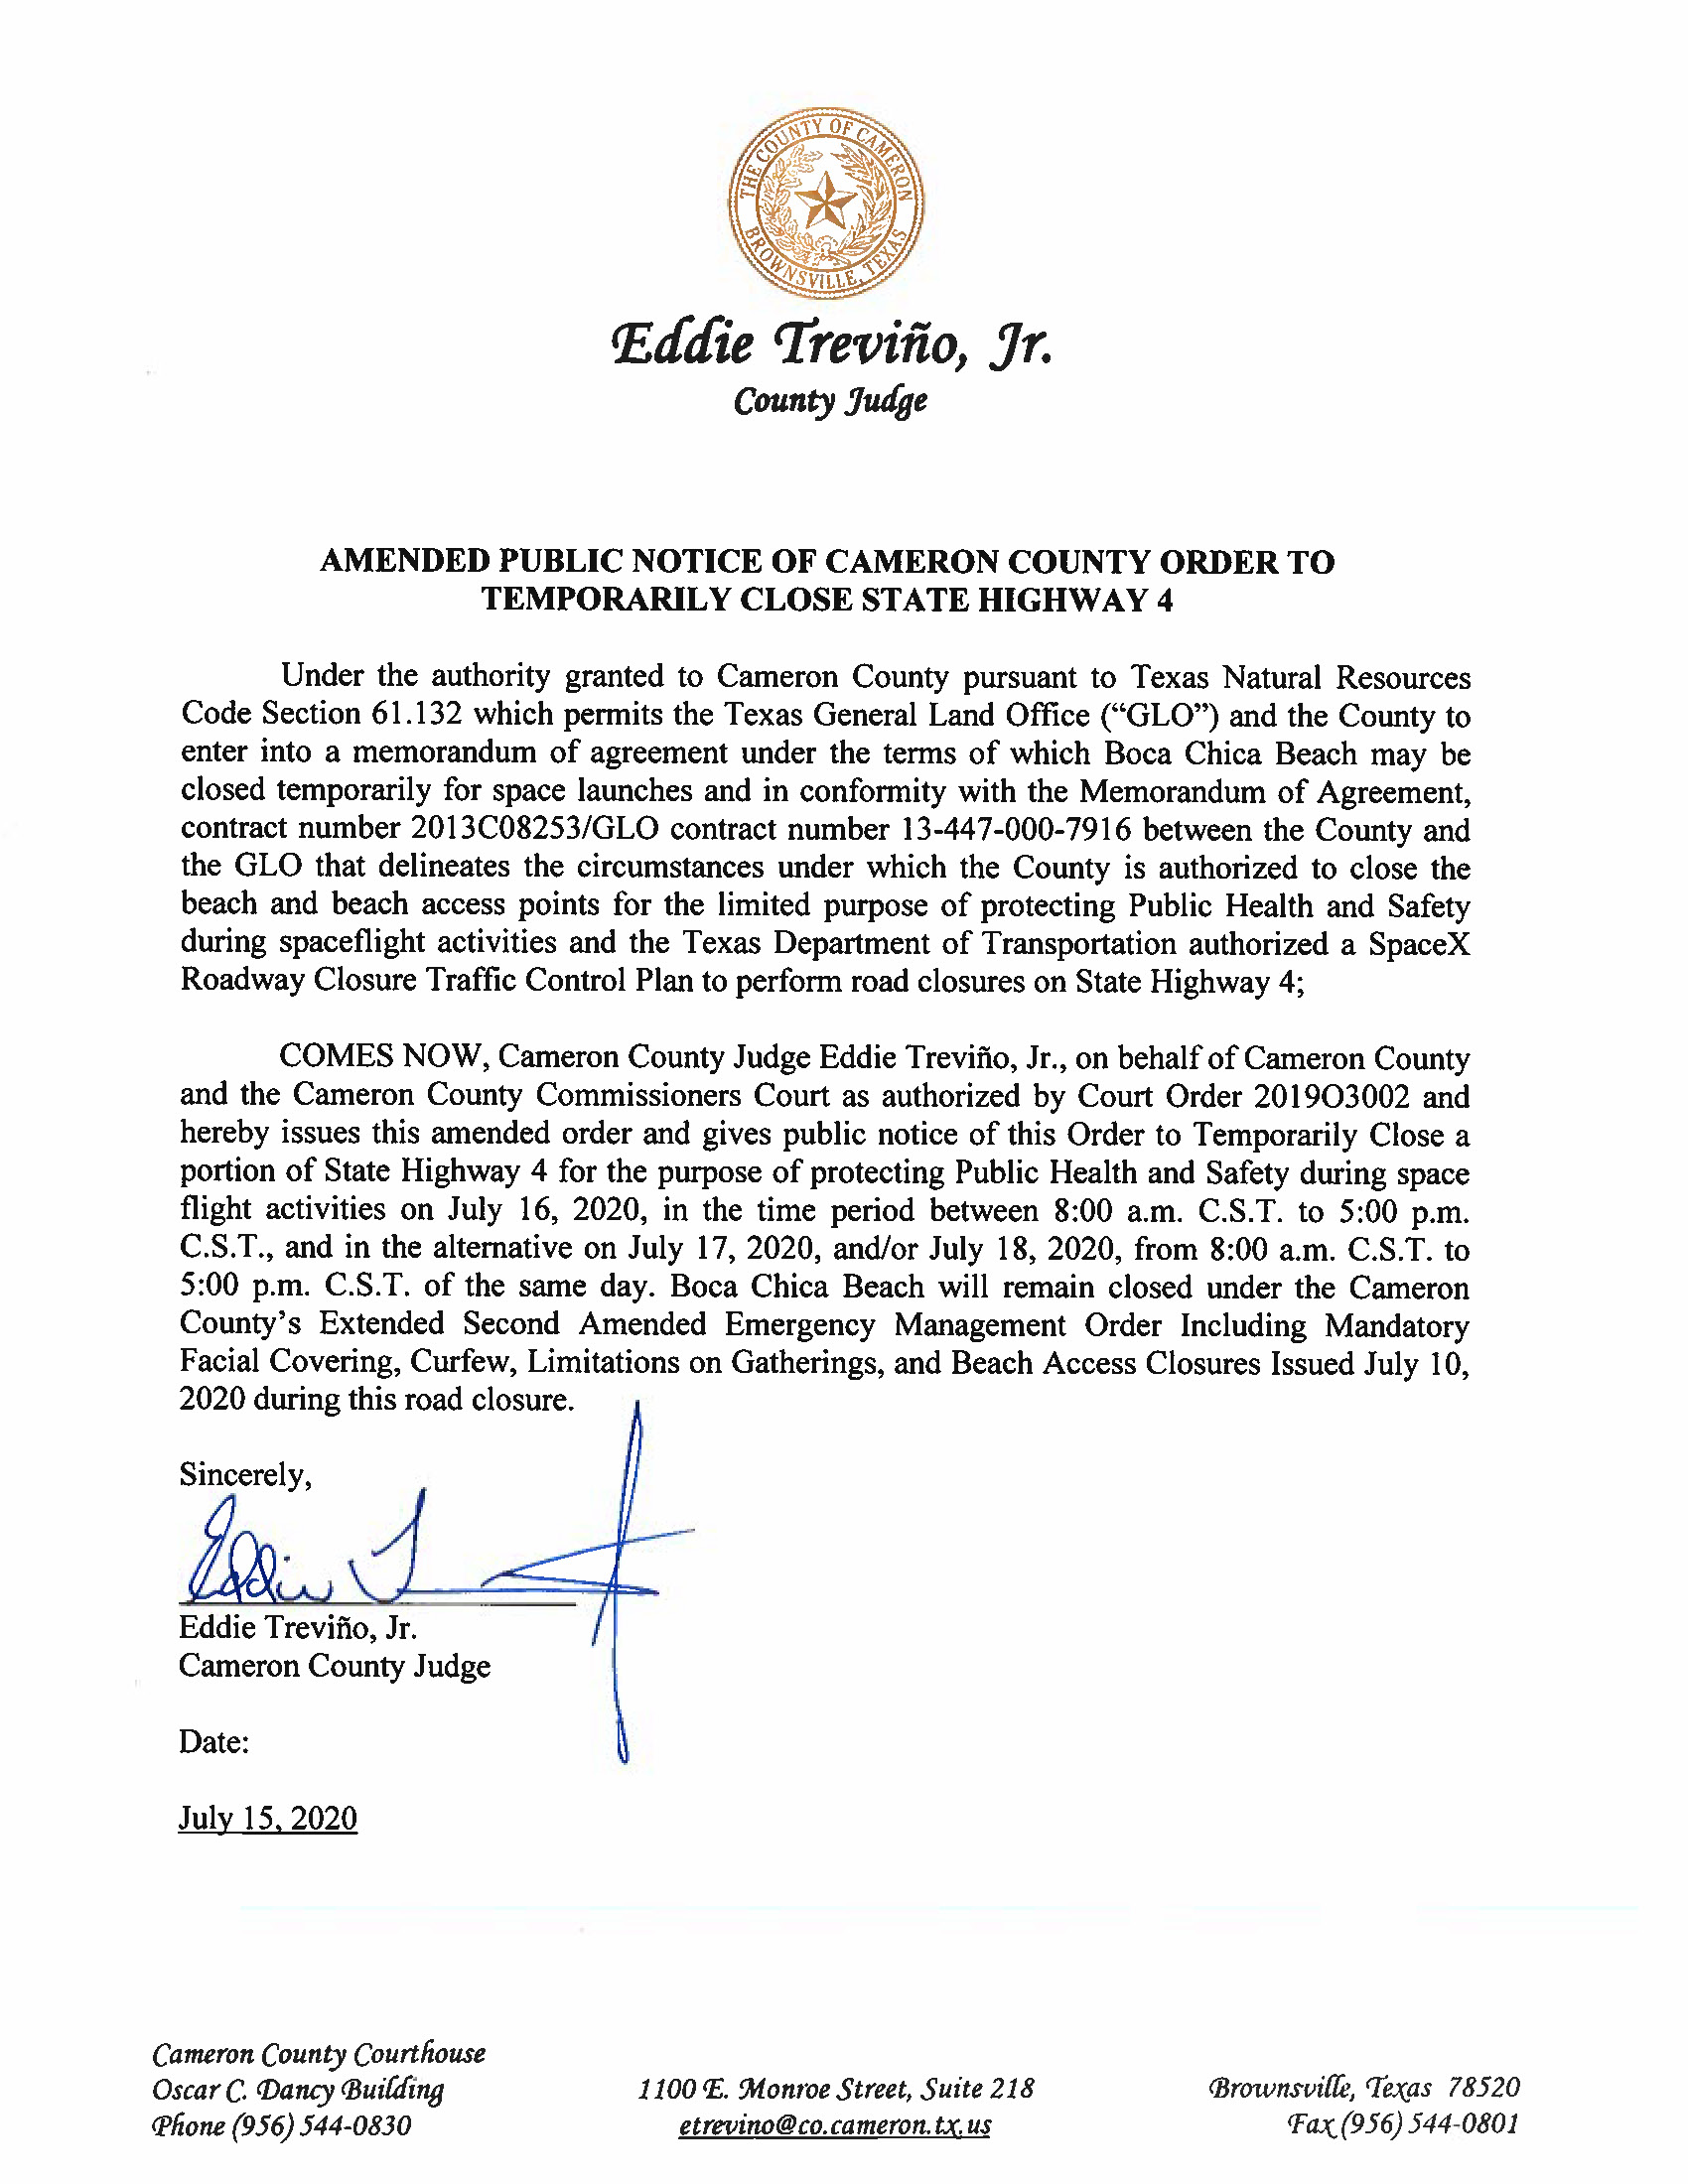 AMENDED PUBLIC NOTICE OF CAMERON COUNTY ORDER TO TEMP. ROAD CLOSURE. 07.16.20.docx Page 1